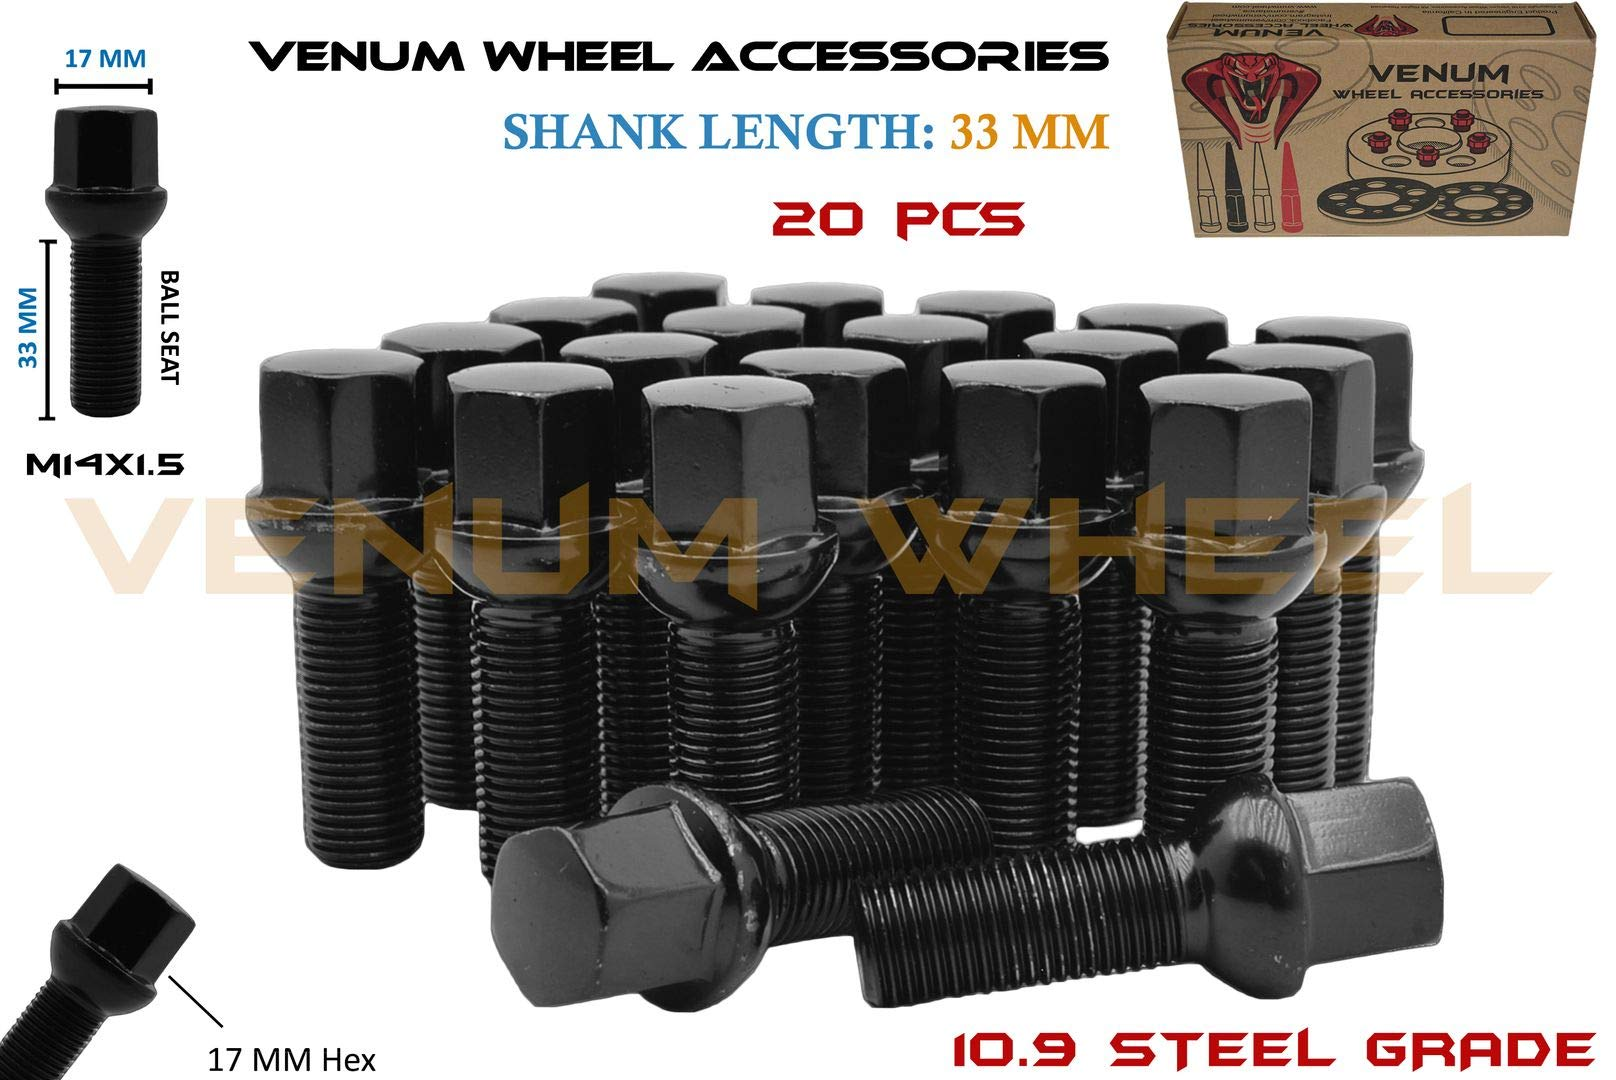 Venum wheel accessories 20Pc Black Powder Coated M14x1.5 Ball Seat Lug Bolts 33 mm Extended Shank Length Radius Works with Volkswagen Audi Mercedes Benz Porsche Vehicle W/Factory Wheels by Venum wheel accessories